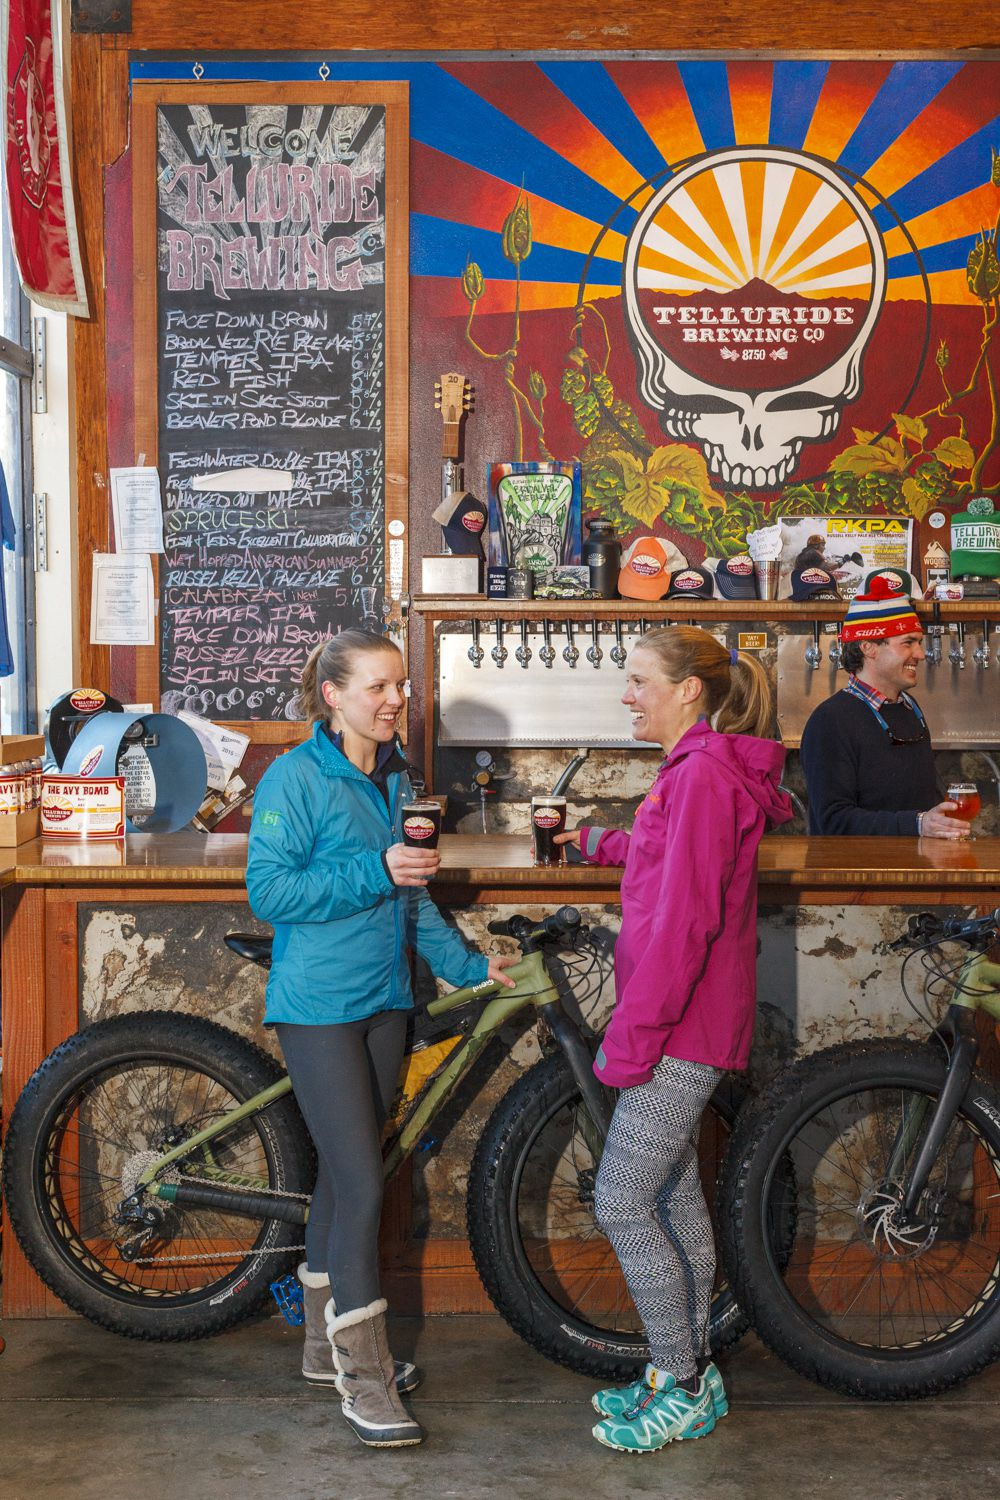 Two women having a drink at the bar at the Telluride Brewing Company, with a colorful mural of a skull head on the wall behind the bar.